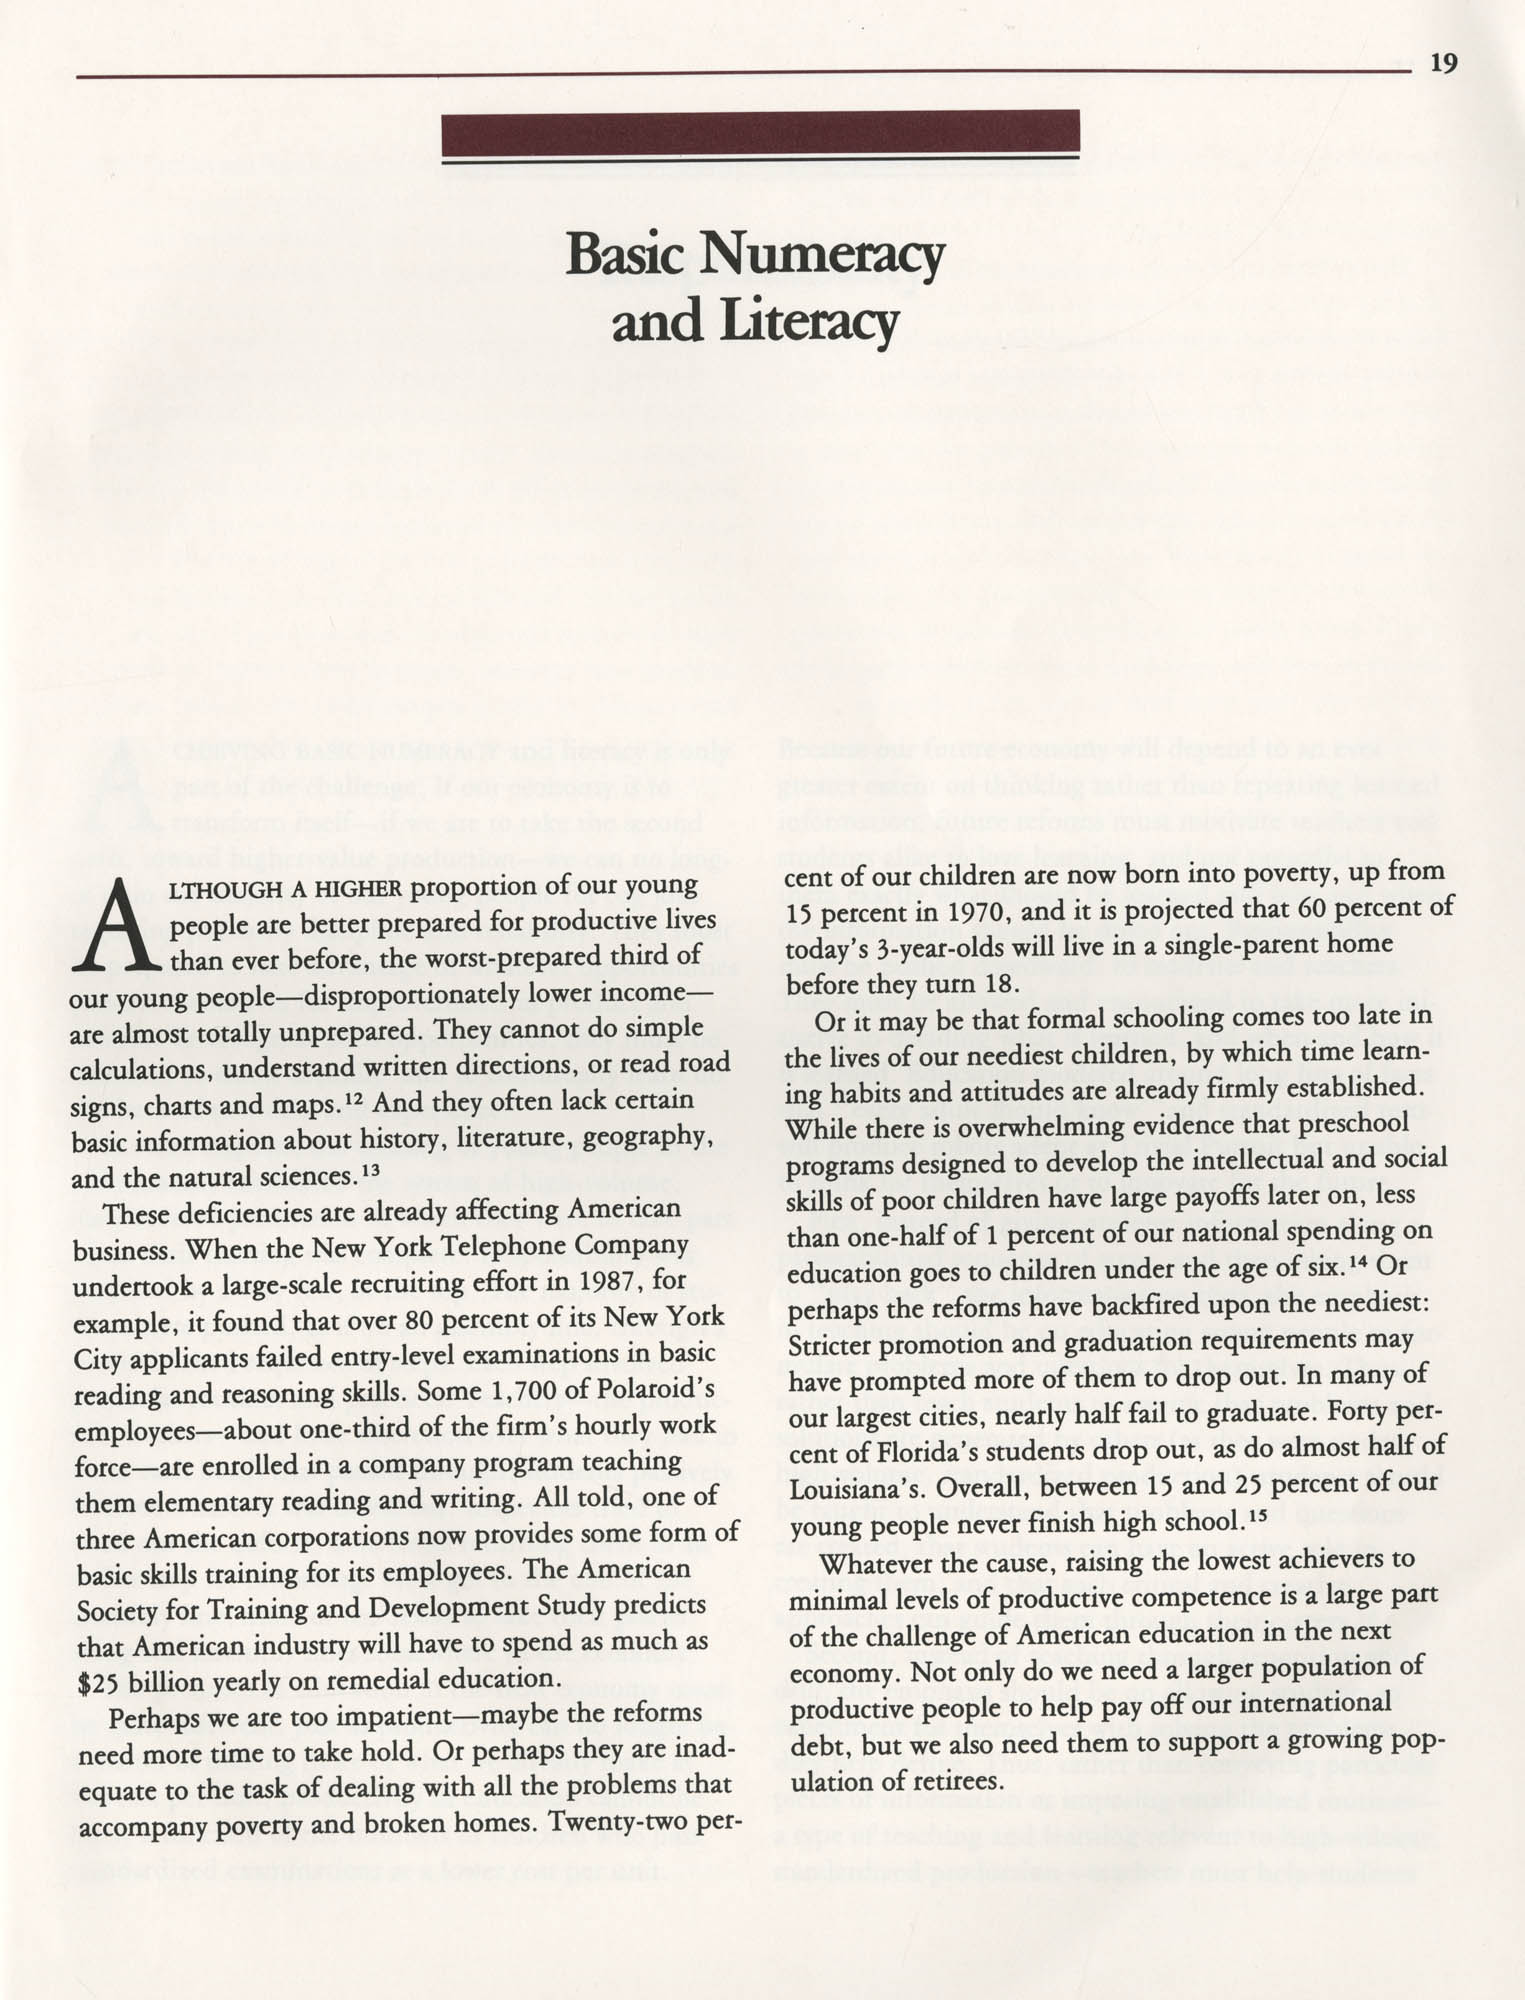 Education and the Next Economy, Page 19